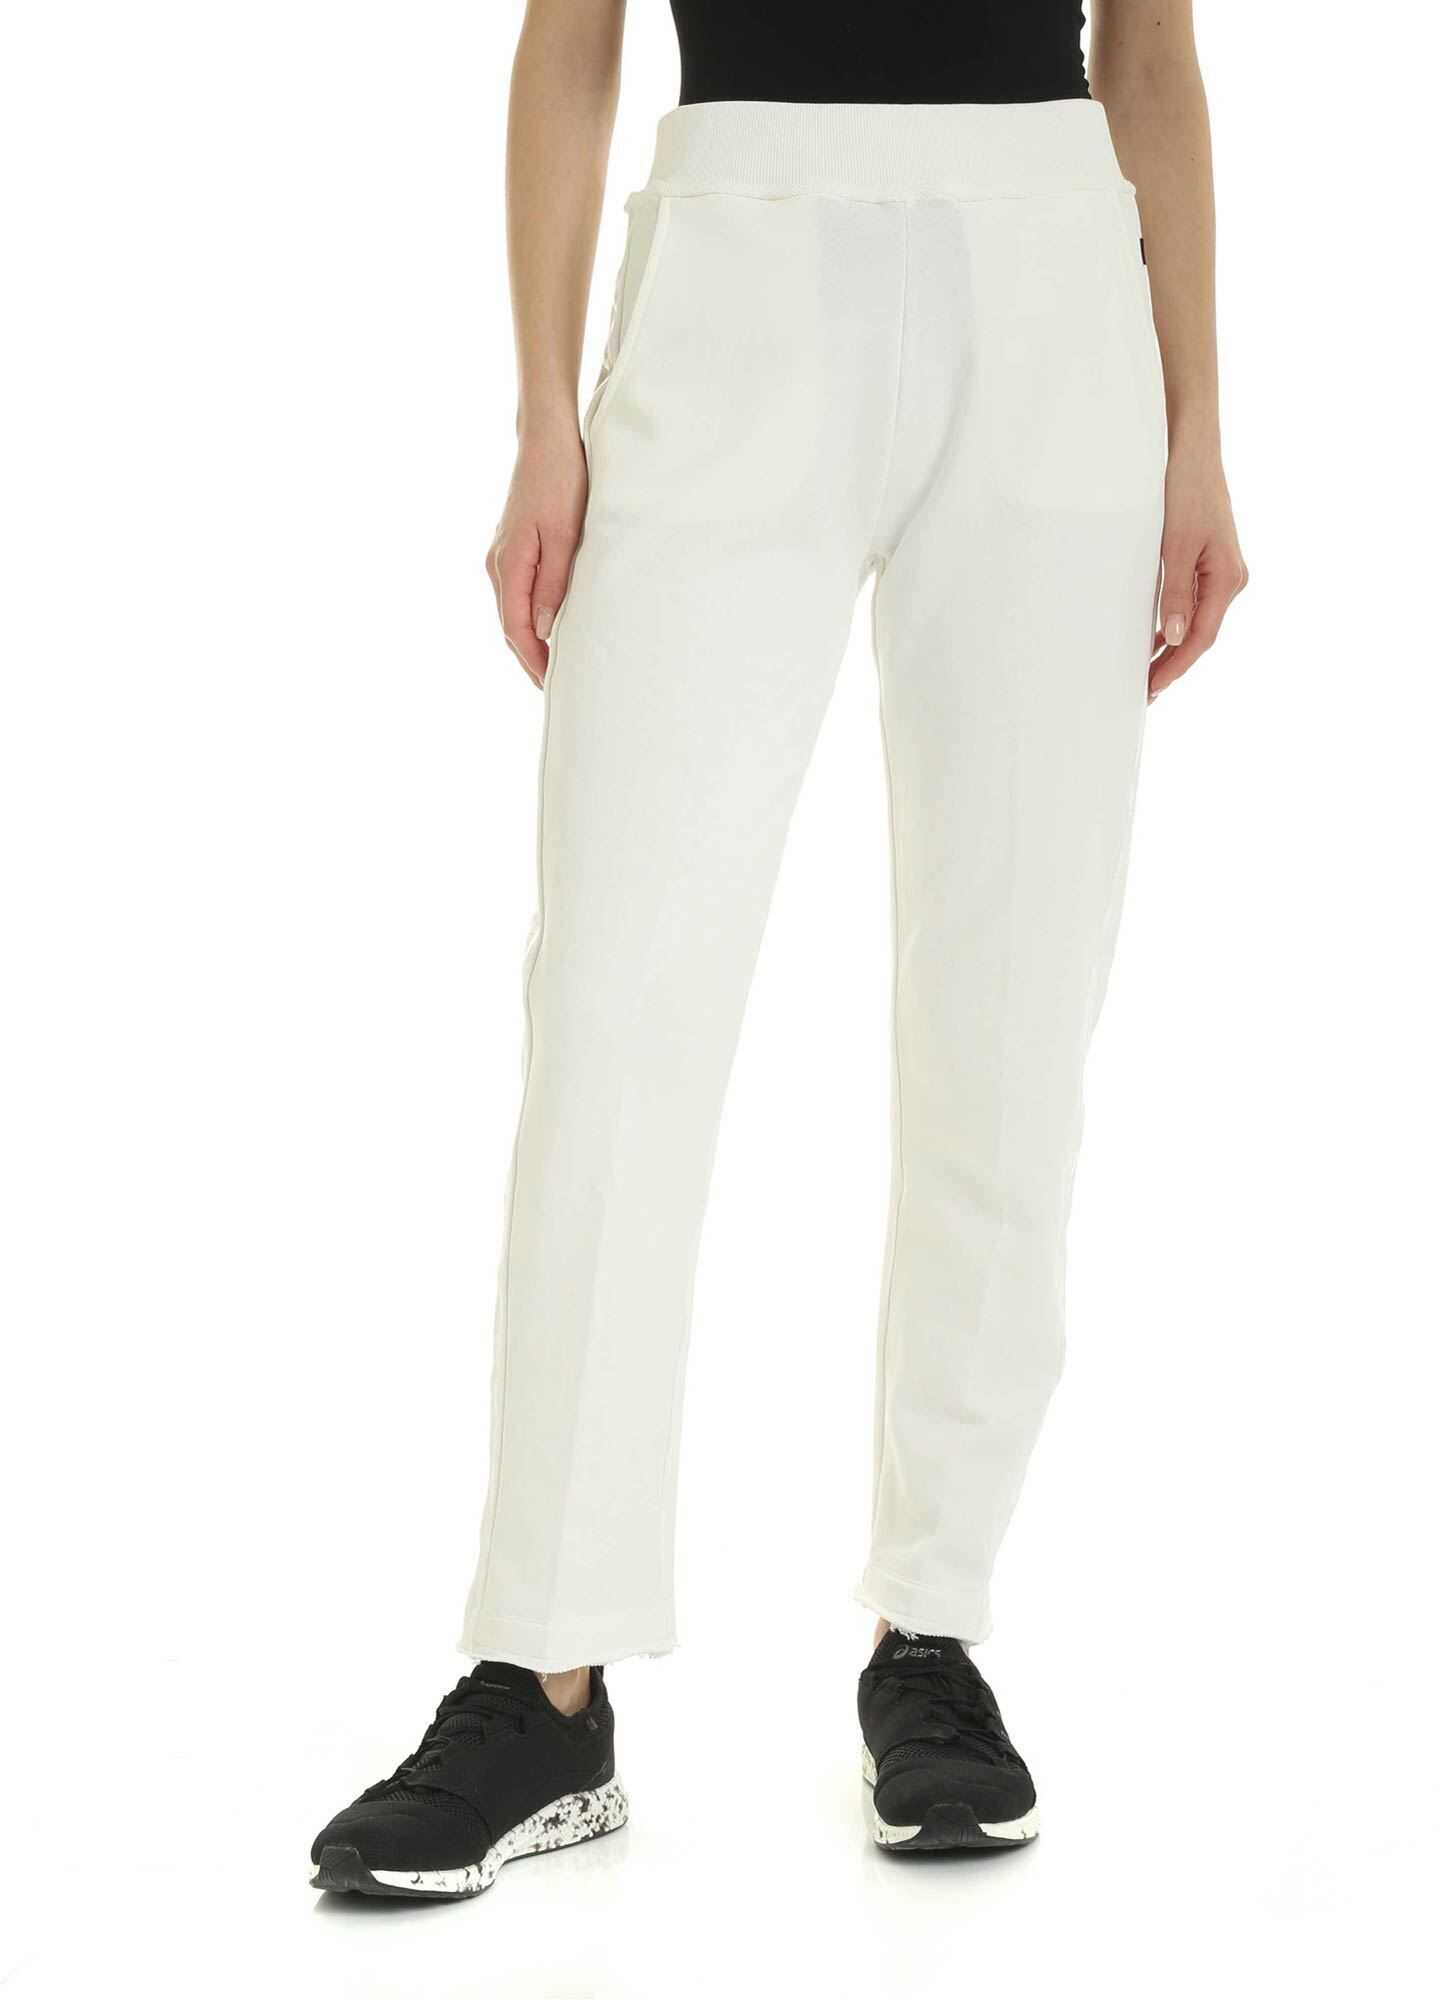 Woolrich Pants In White With Tone-On-Tone Logo White